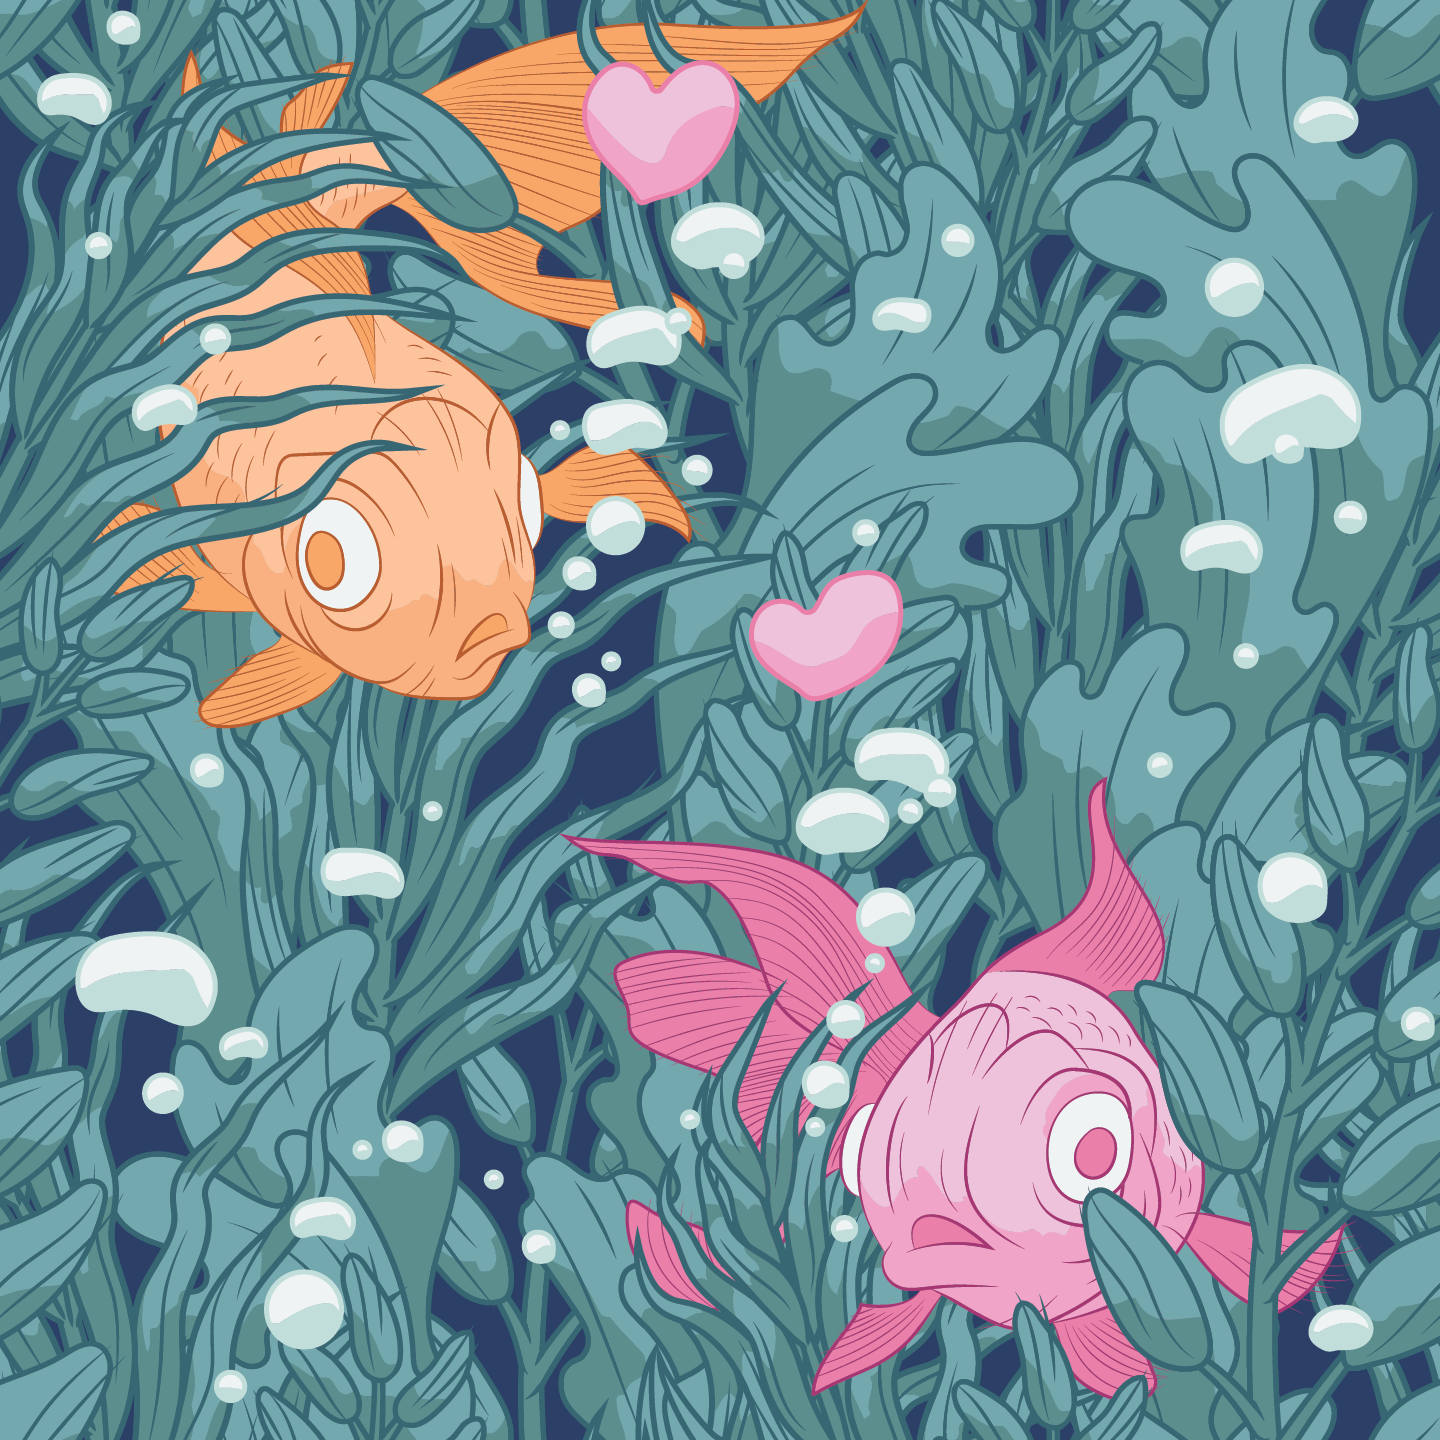 OK_goldfish in love art1-01 8.15.48 AM.png